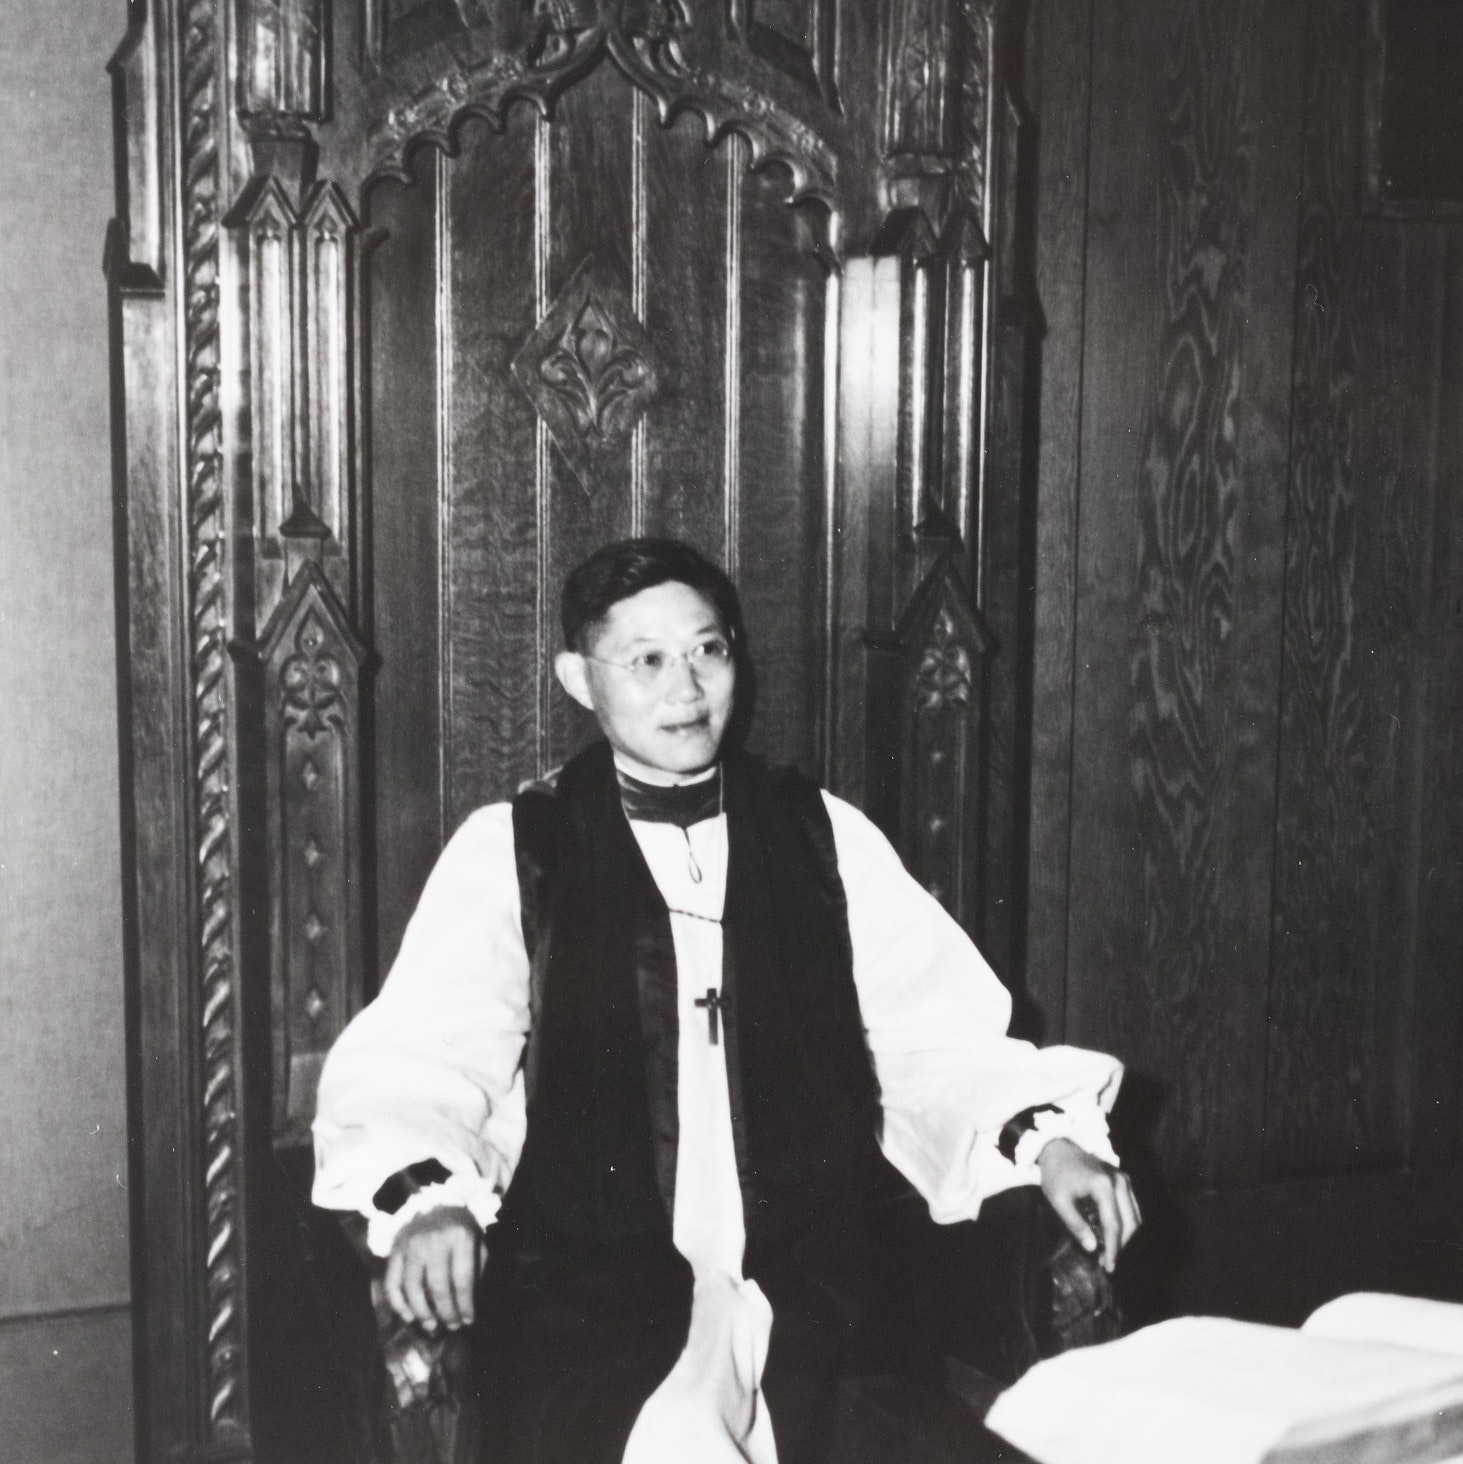 Black & White image of the Bishop of Southwest China seated